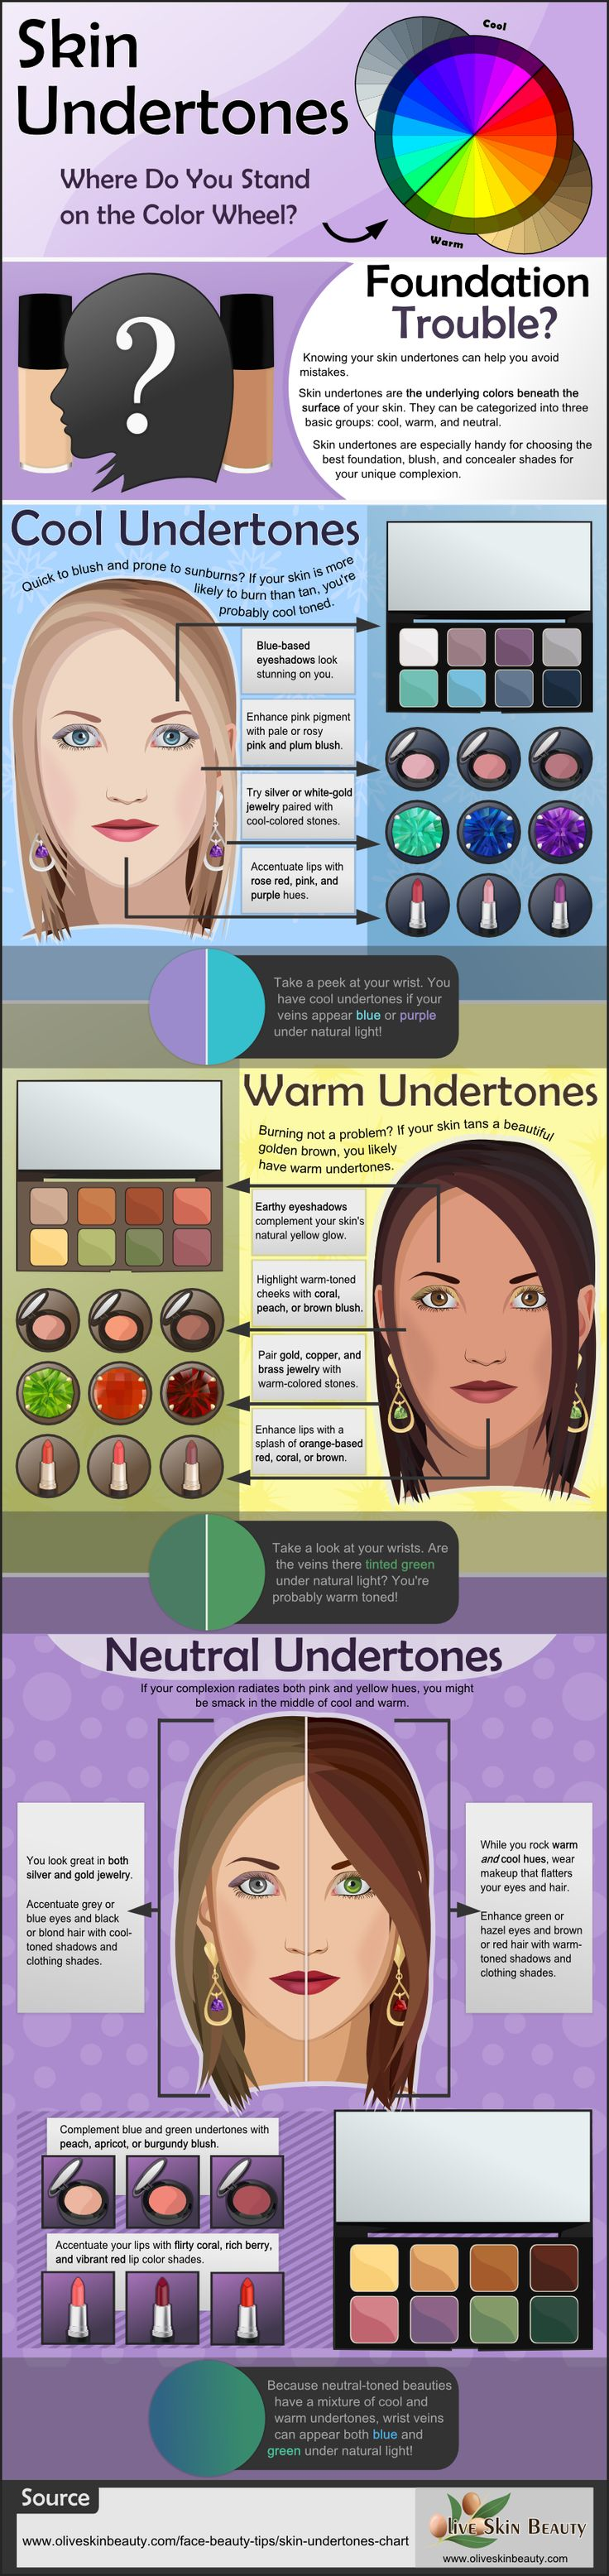 When choosing the perfect foundation match, skin undertones are especially helpful. This infographic explores cool, warm, and neutral undertones with suggestions on how to look your best no matter the category you fall into. #skinundertones #makeup #beauty: When choosing the perfect foundation match, skin undertones are especially helpful. This infographic explores cool, warm, and neutral undertones with suggestions on how to look your best no matter the category you fall into. #skinundertones #makeup #beauty